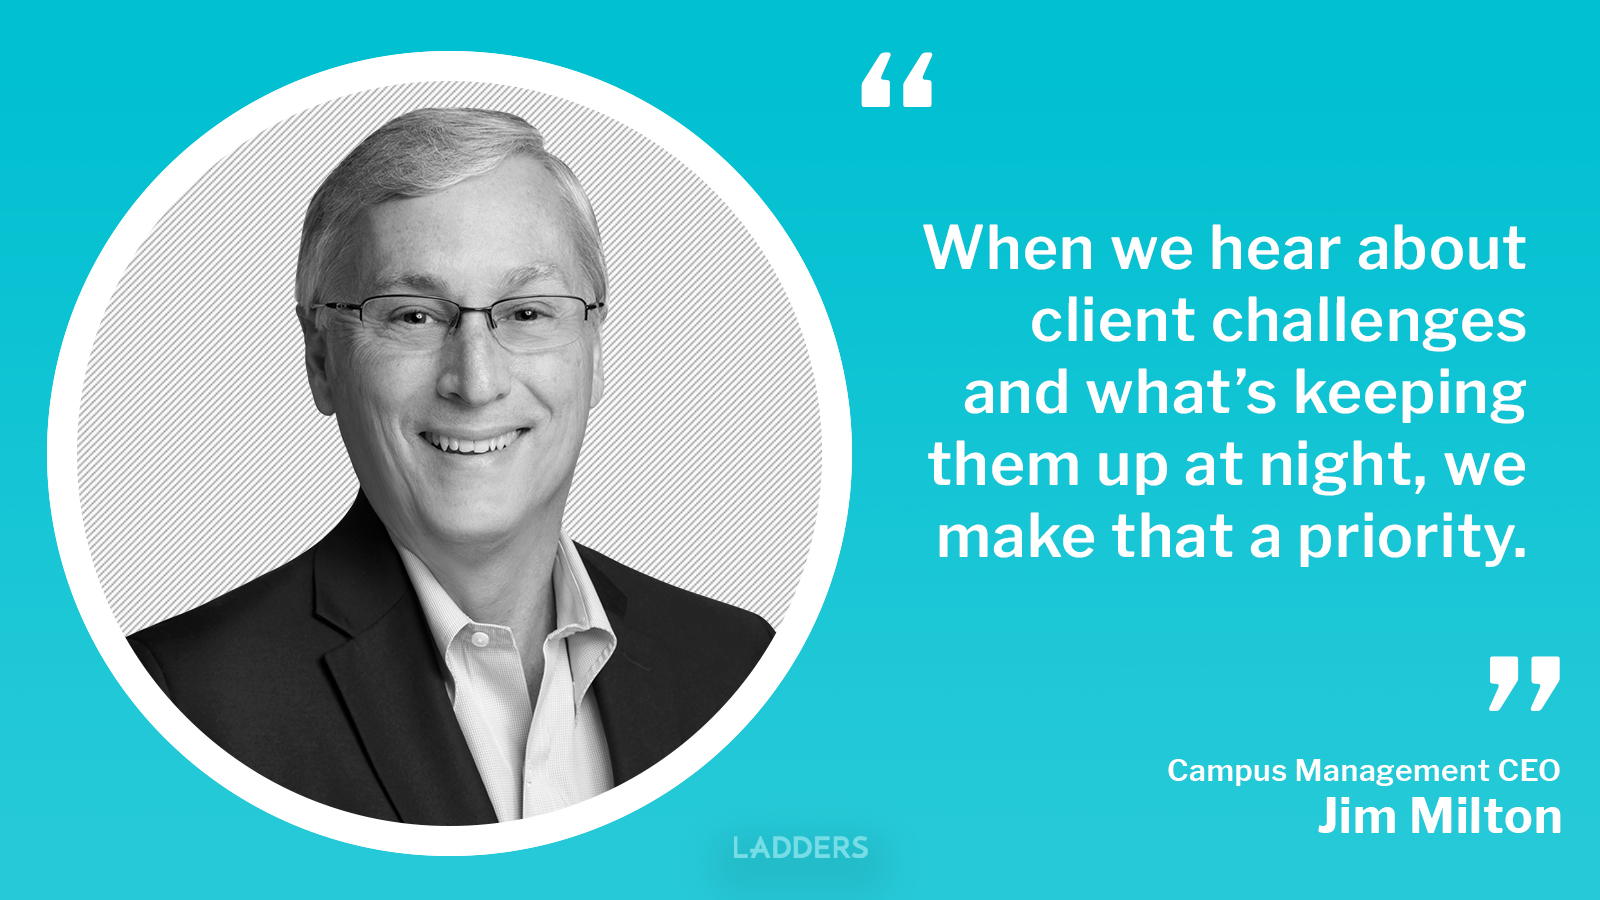 Campus Management CEO Jim Milton on transforming higher education and onboarding as an executive